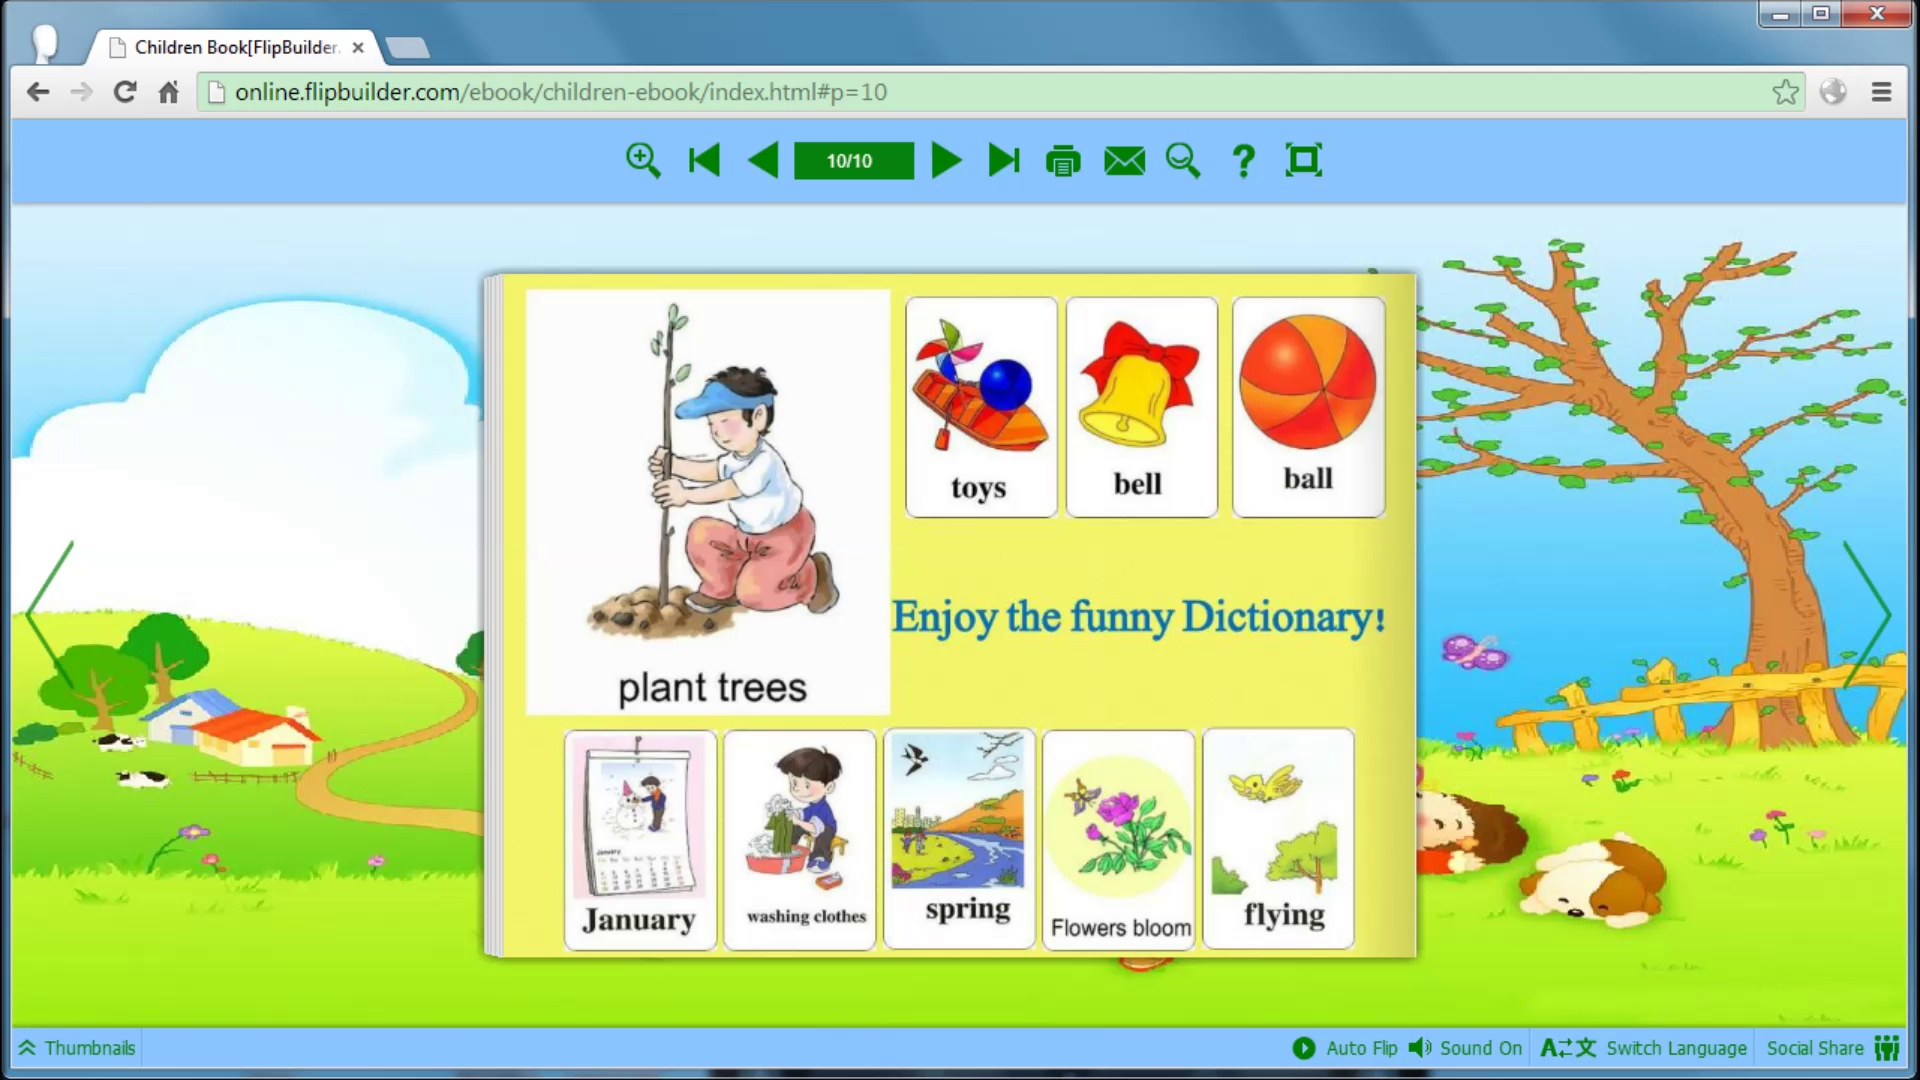 Brand Marketing Brochure Software – advertise your brand online with interactive multimedia brochure